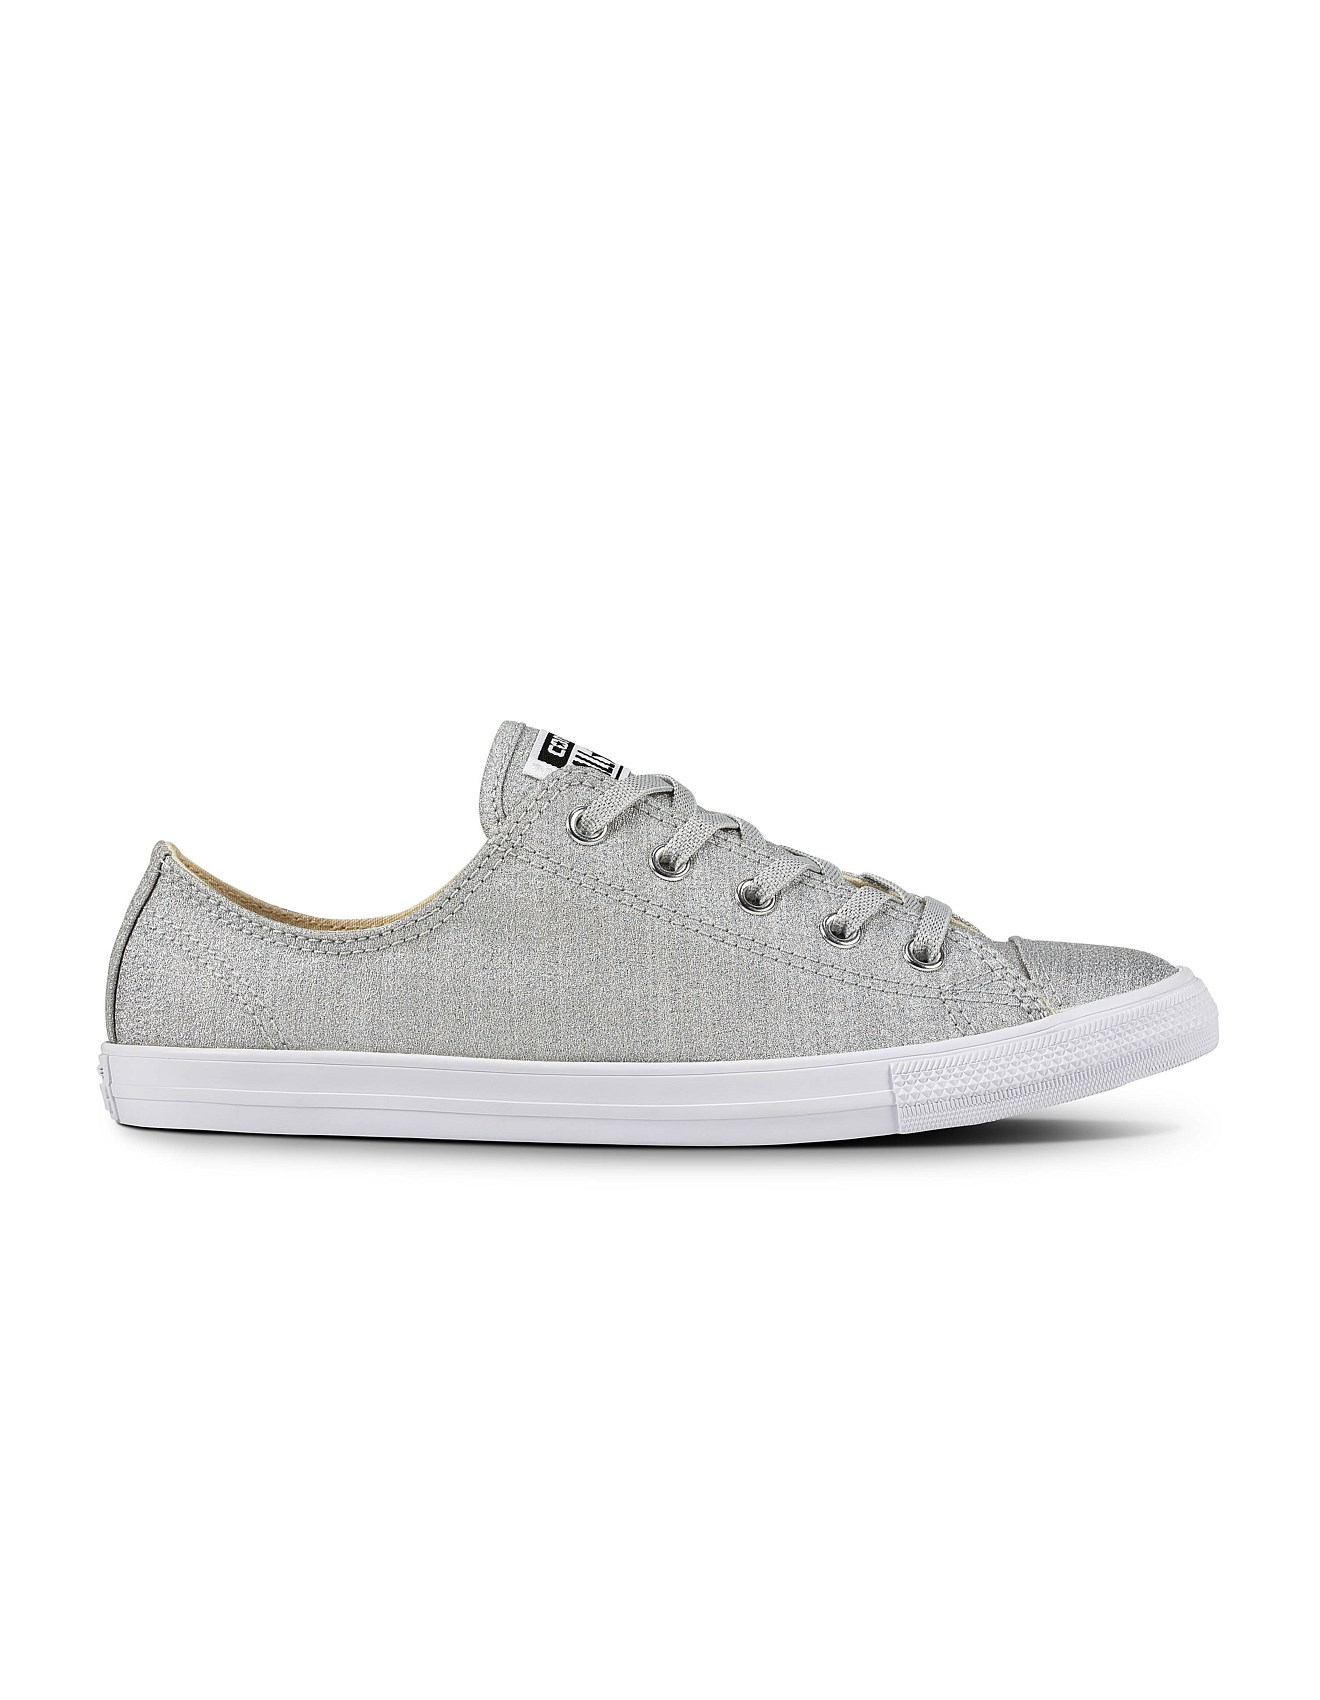 124ee18e83cb Women - Chuck Taylor All Star Dainty - Ox Sneaker